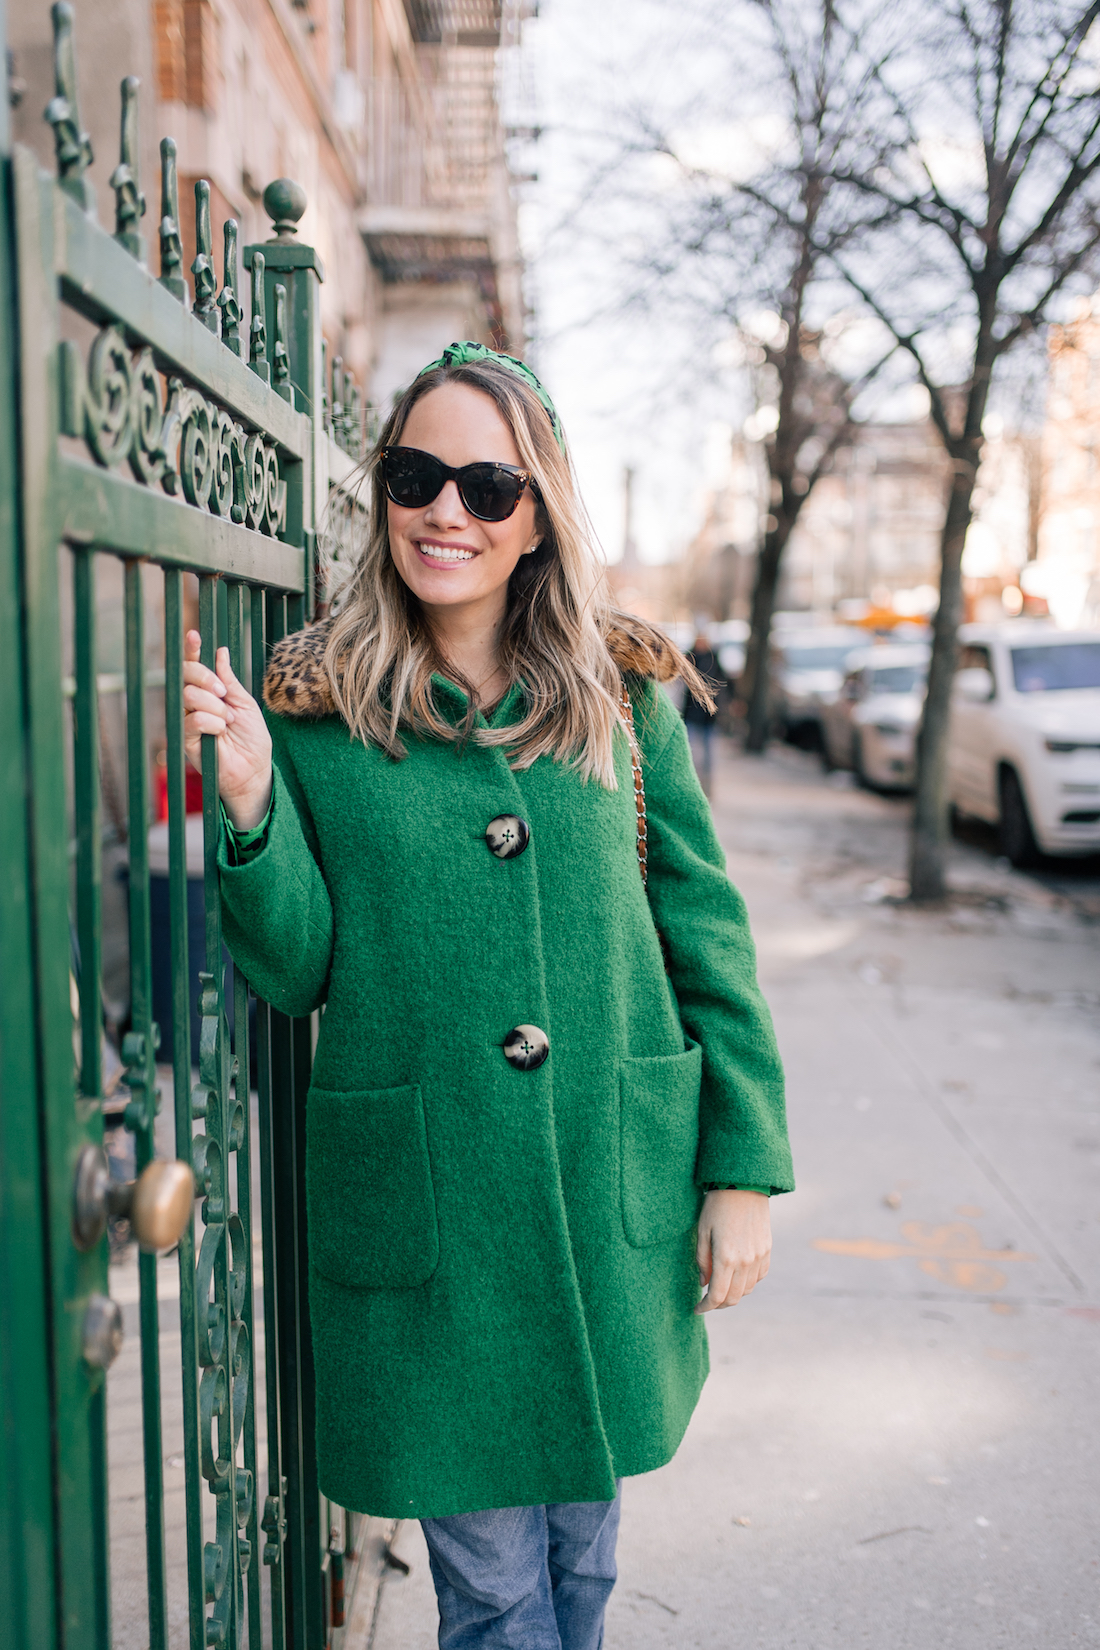 An emerald green outfit